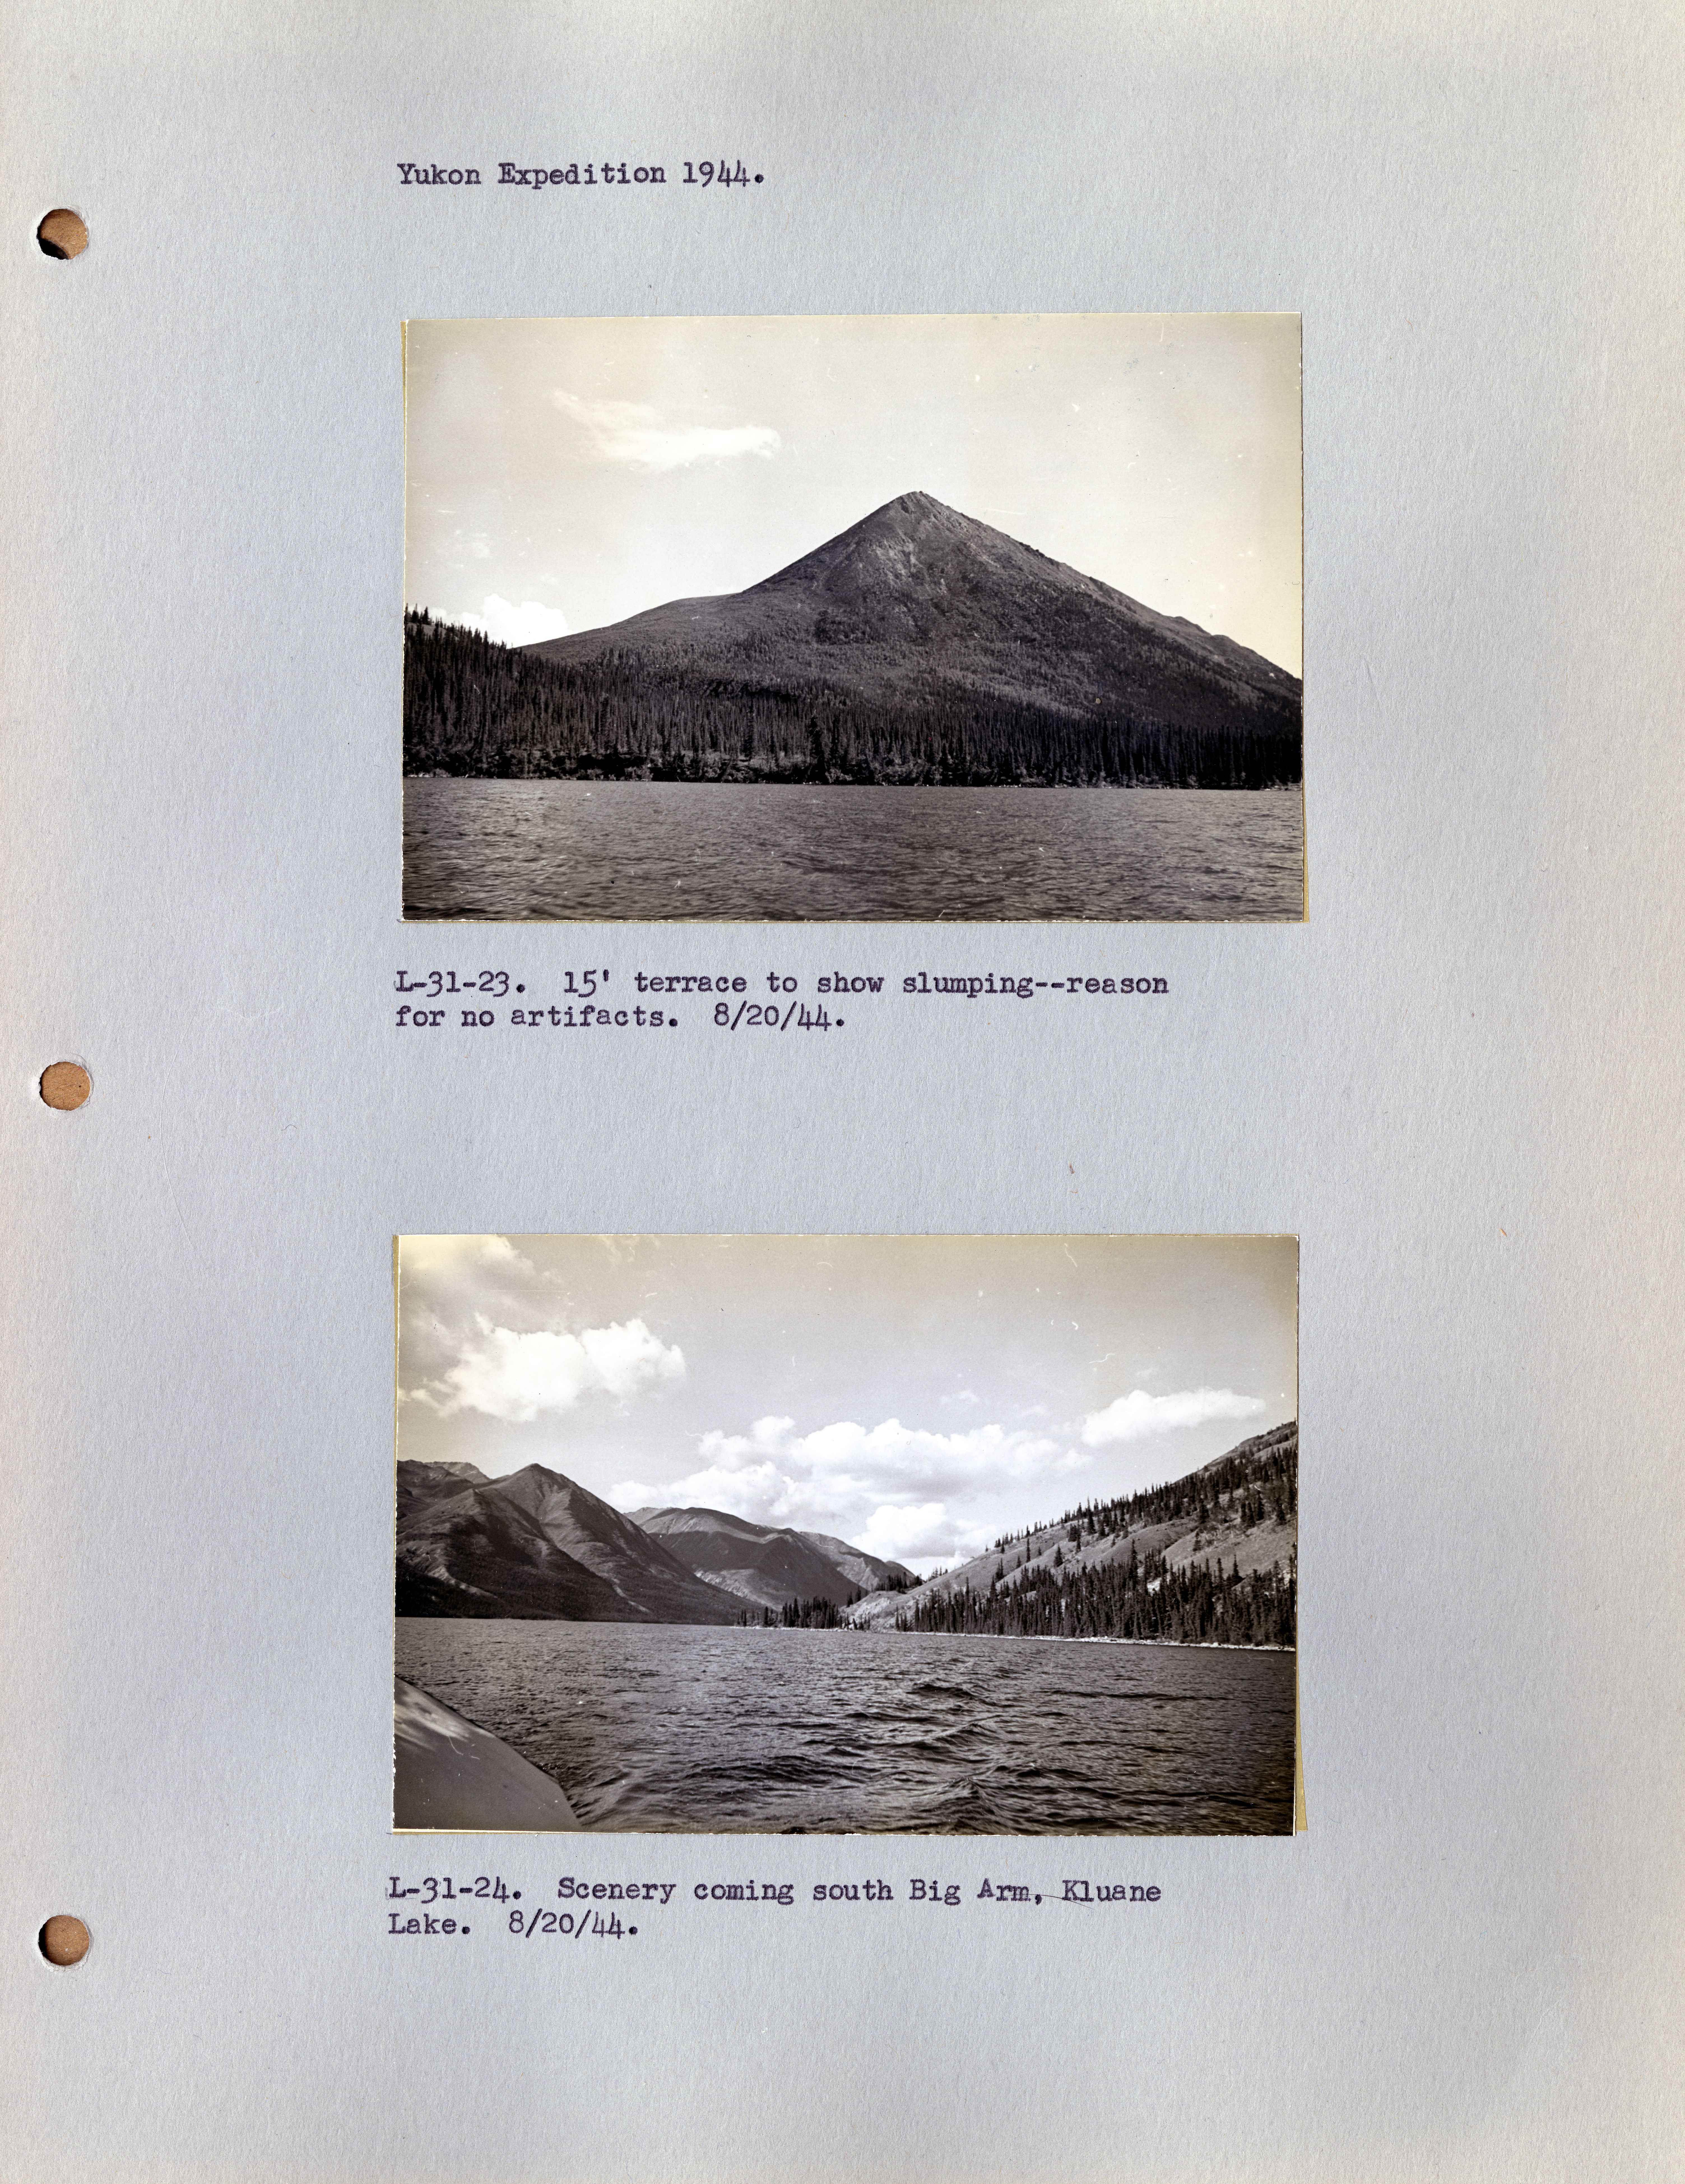 Example of an Andover-Harvard Yukon Expedition photographs page, with images from 1944.